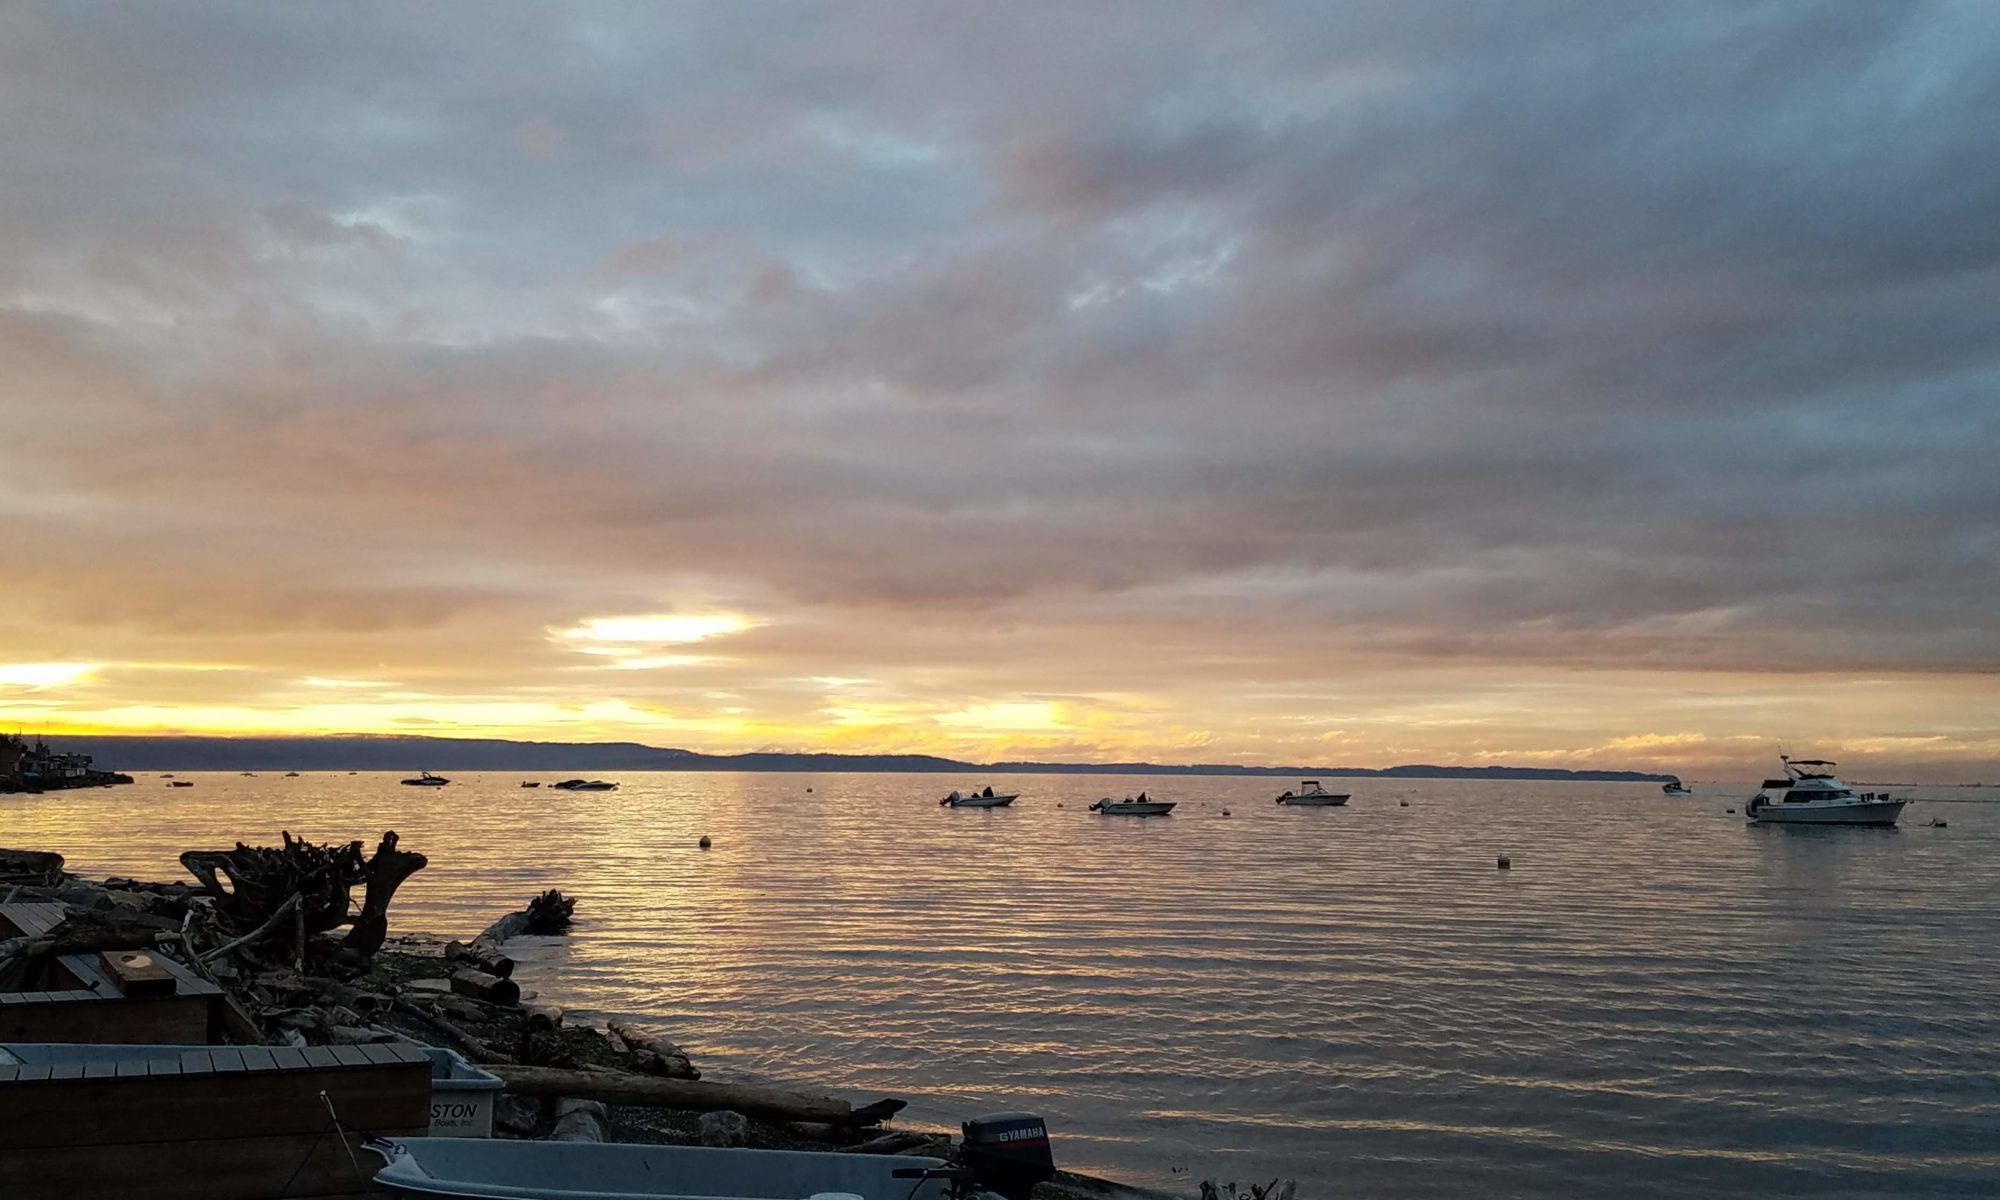 Pnw Boater Is Someone Who Lives Around The Puget Sound Area Of